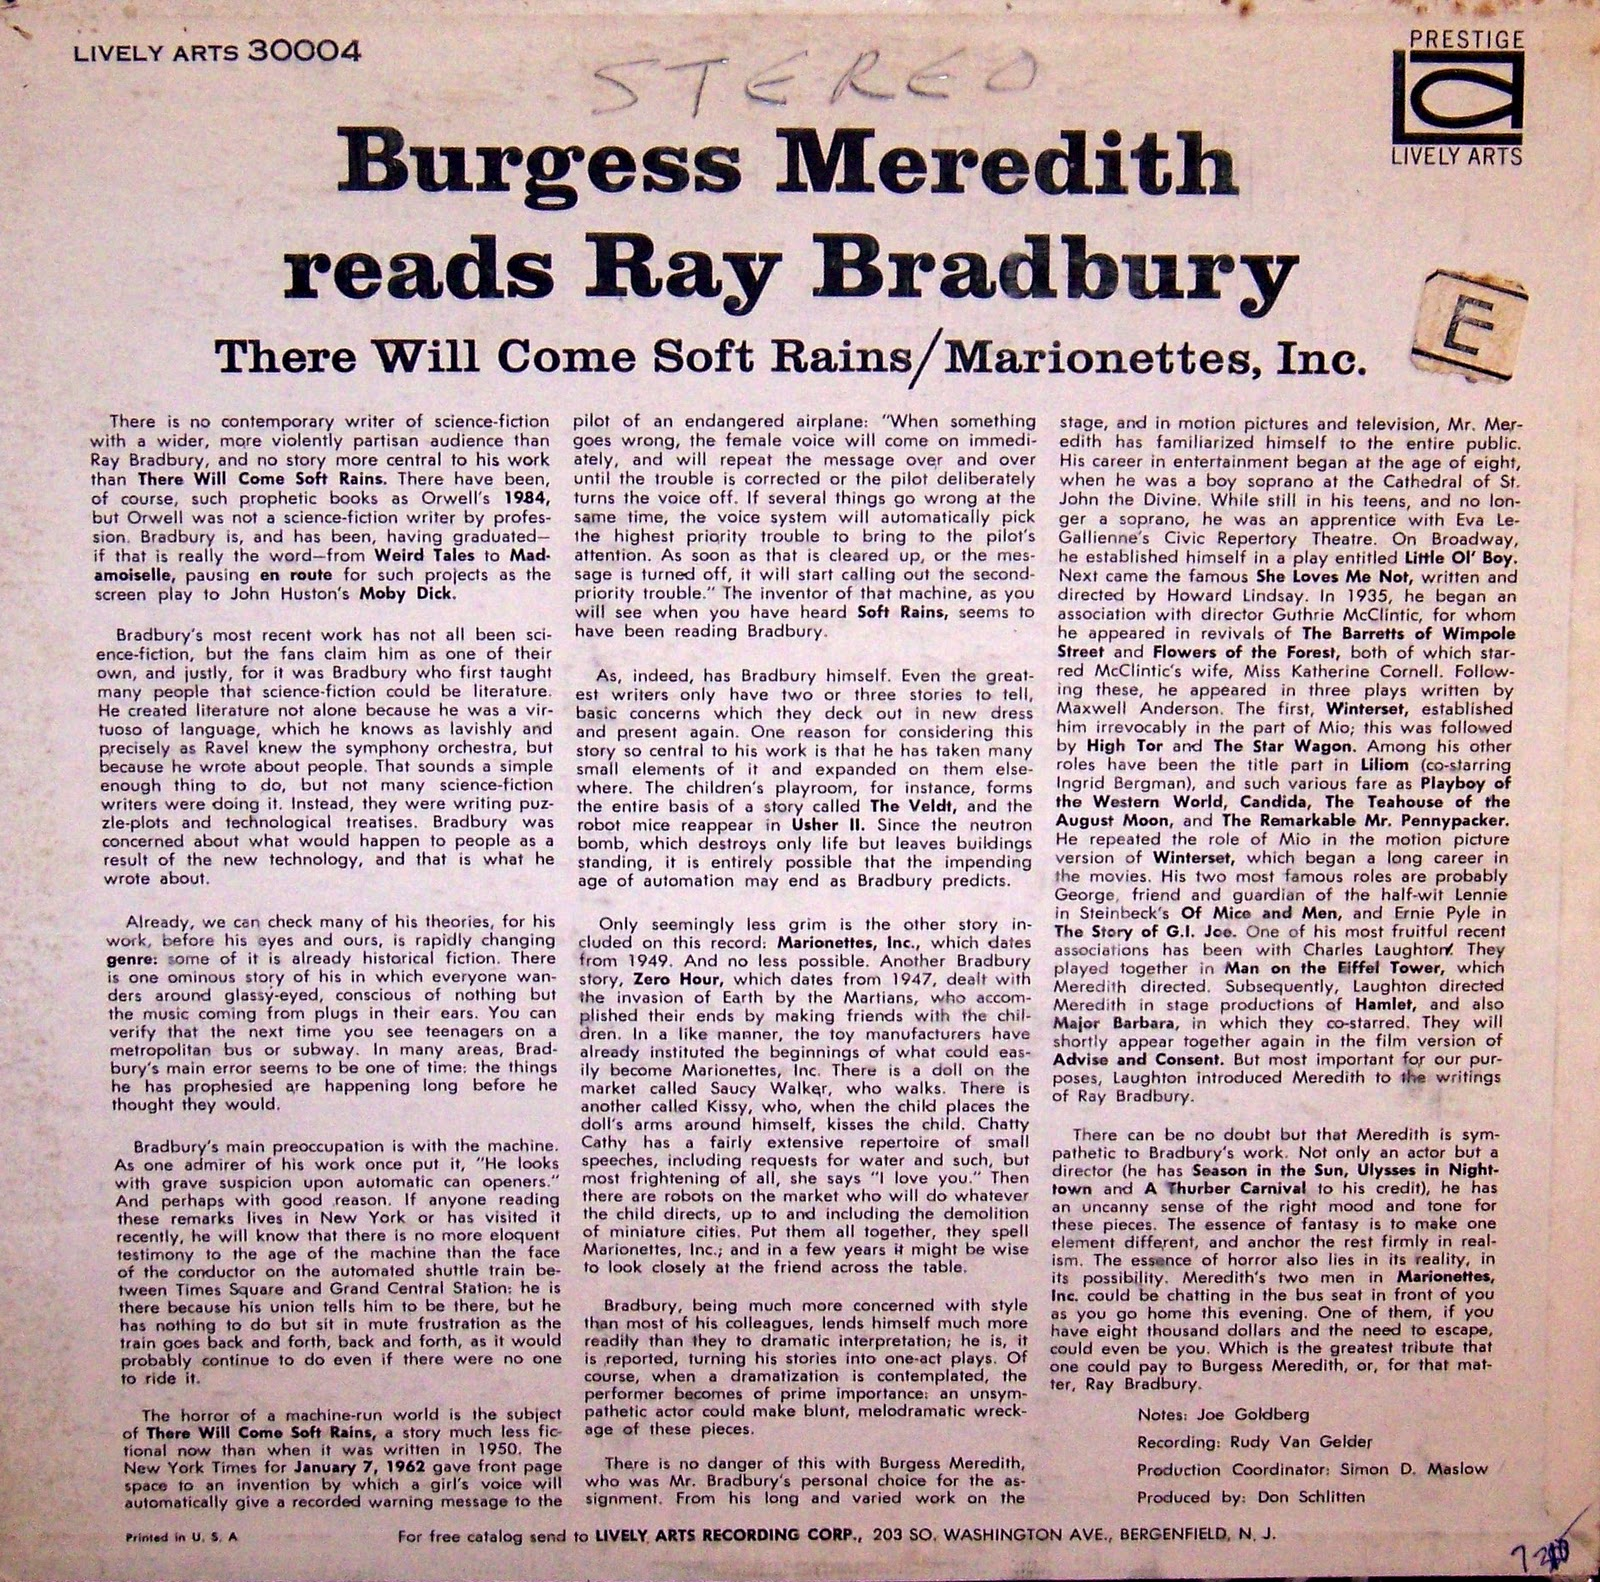 marooned science fiction fantasy books on mars listen to  marooned science fiction fantasy books on mars listen to burgess meredith ray bradbury s 1950 short story there will come soft rains